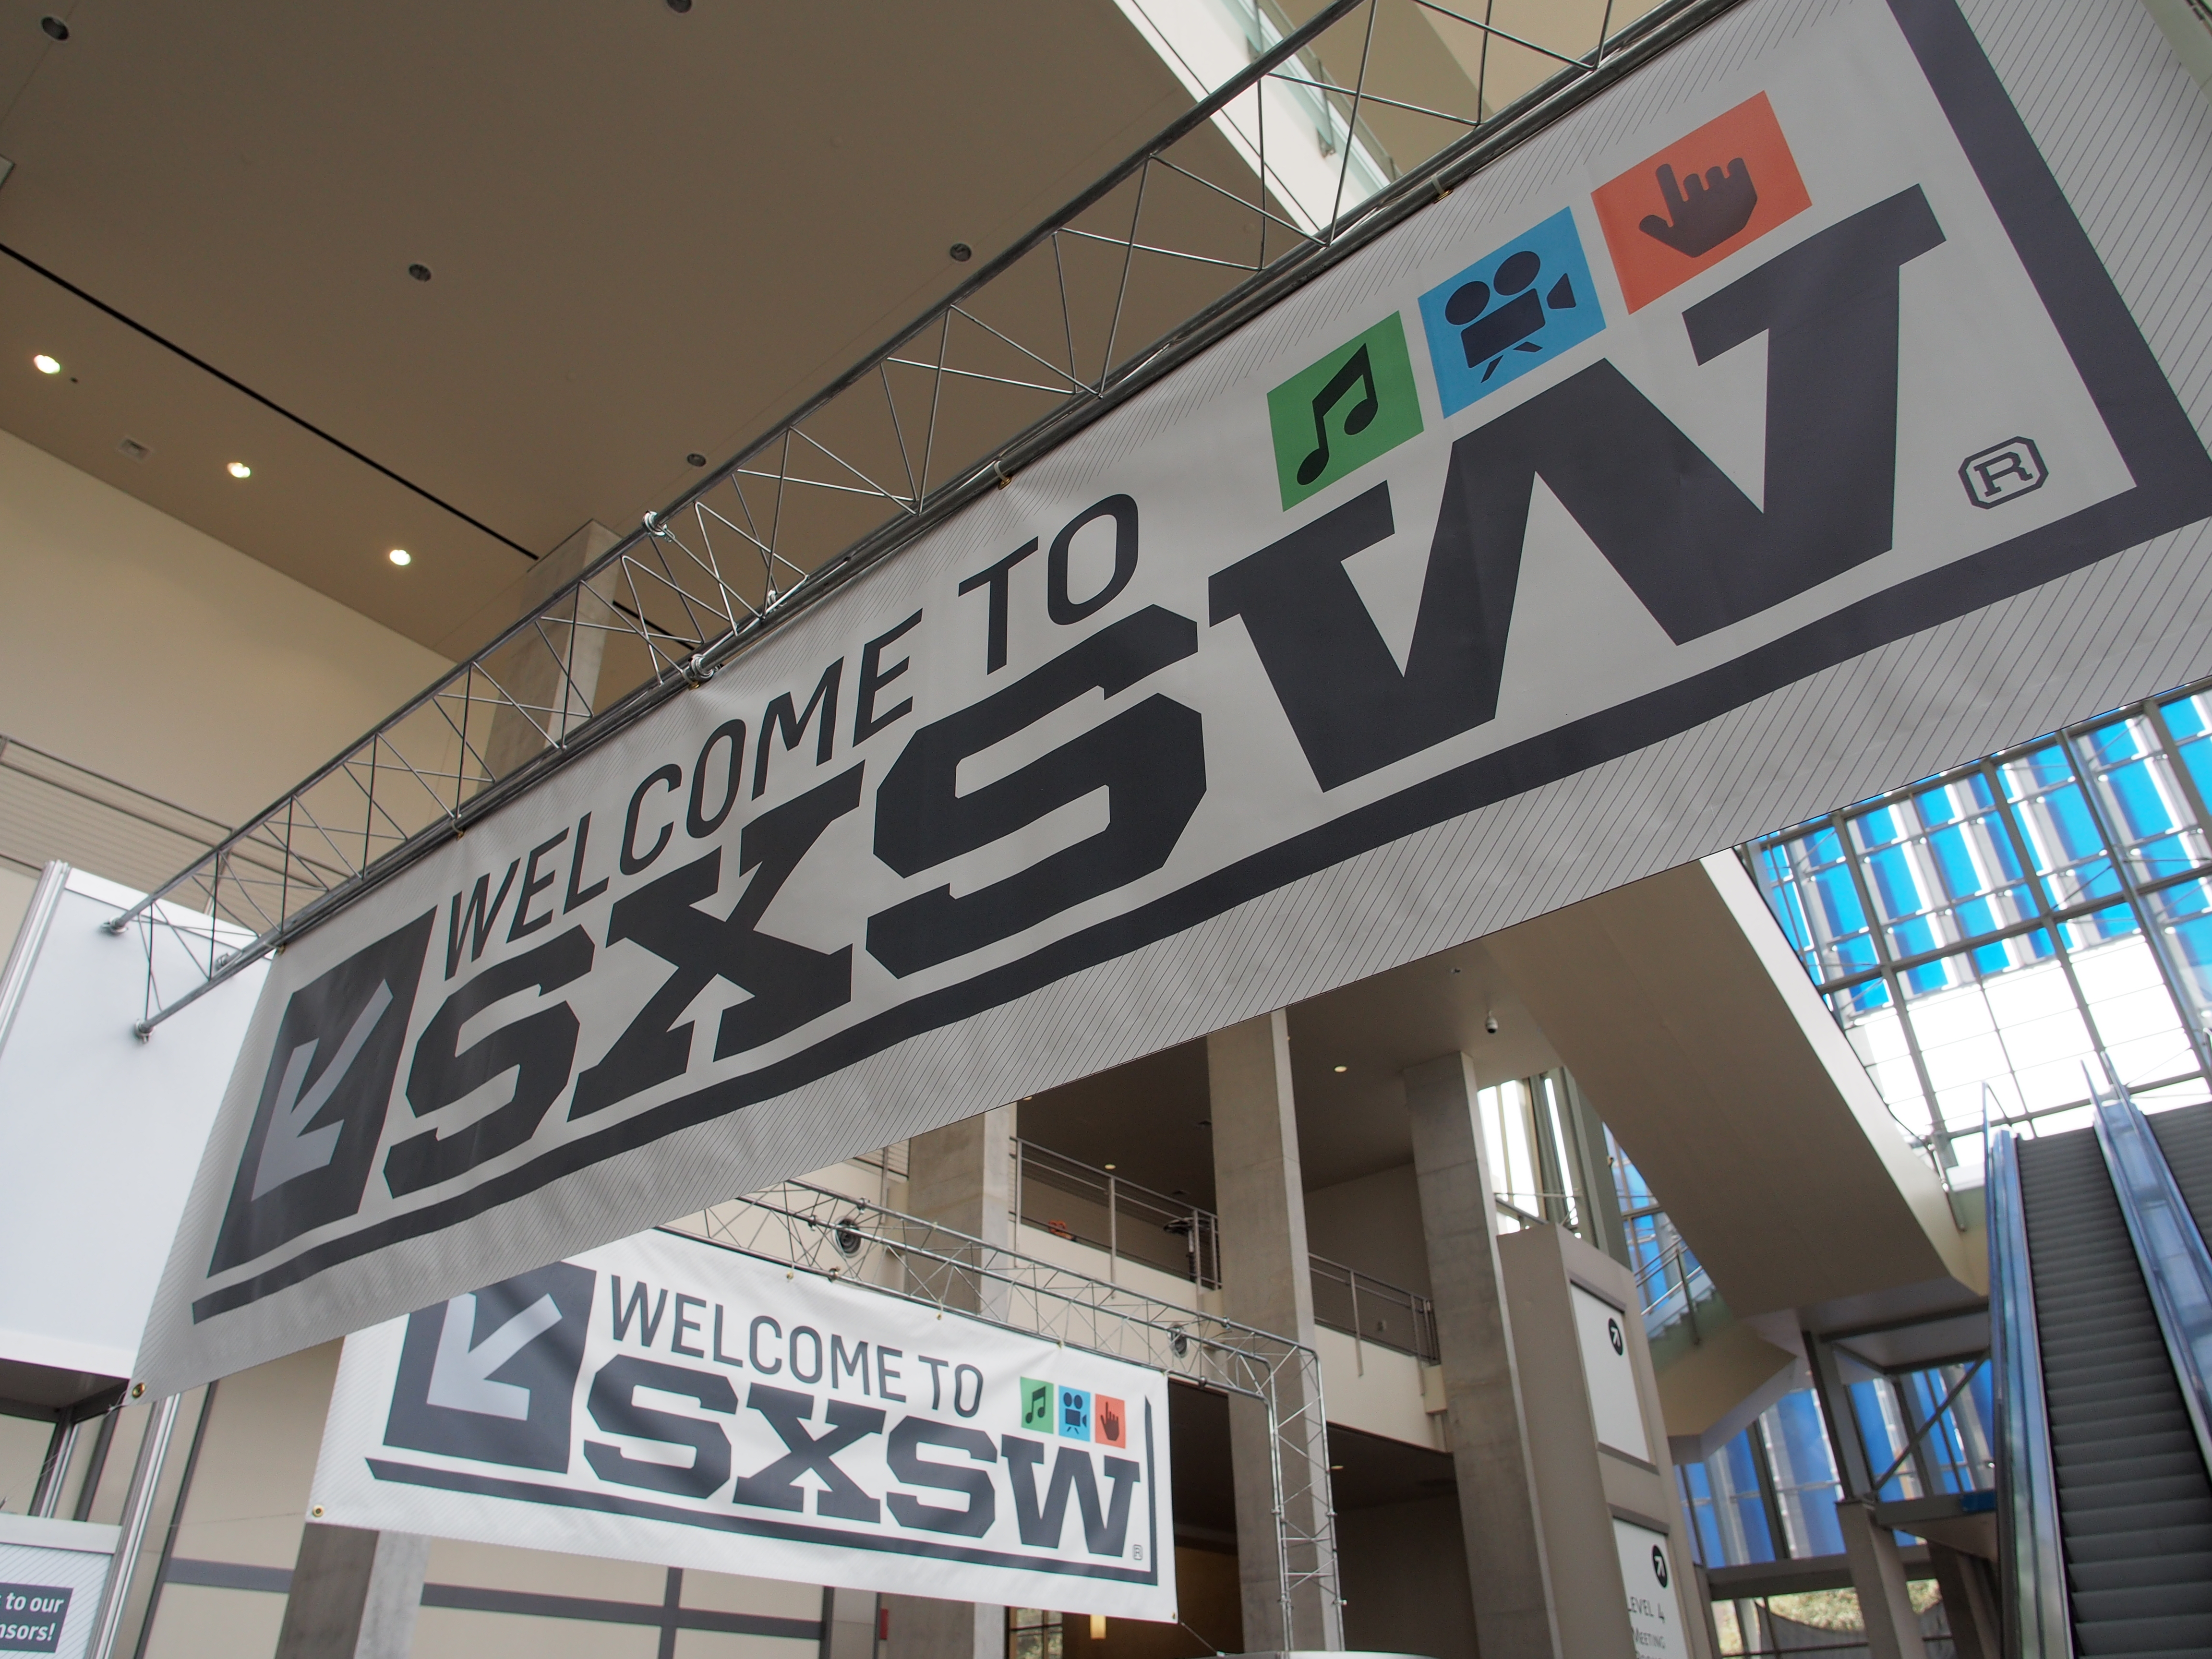 Banners hang in the atrium of the Austin Convention Center on Thursday, March 7, 2012 on the eve of the opening of the 27th South By Southwest (SXSW) interactive, film and music festival.